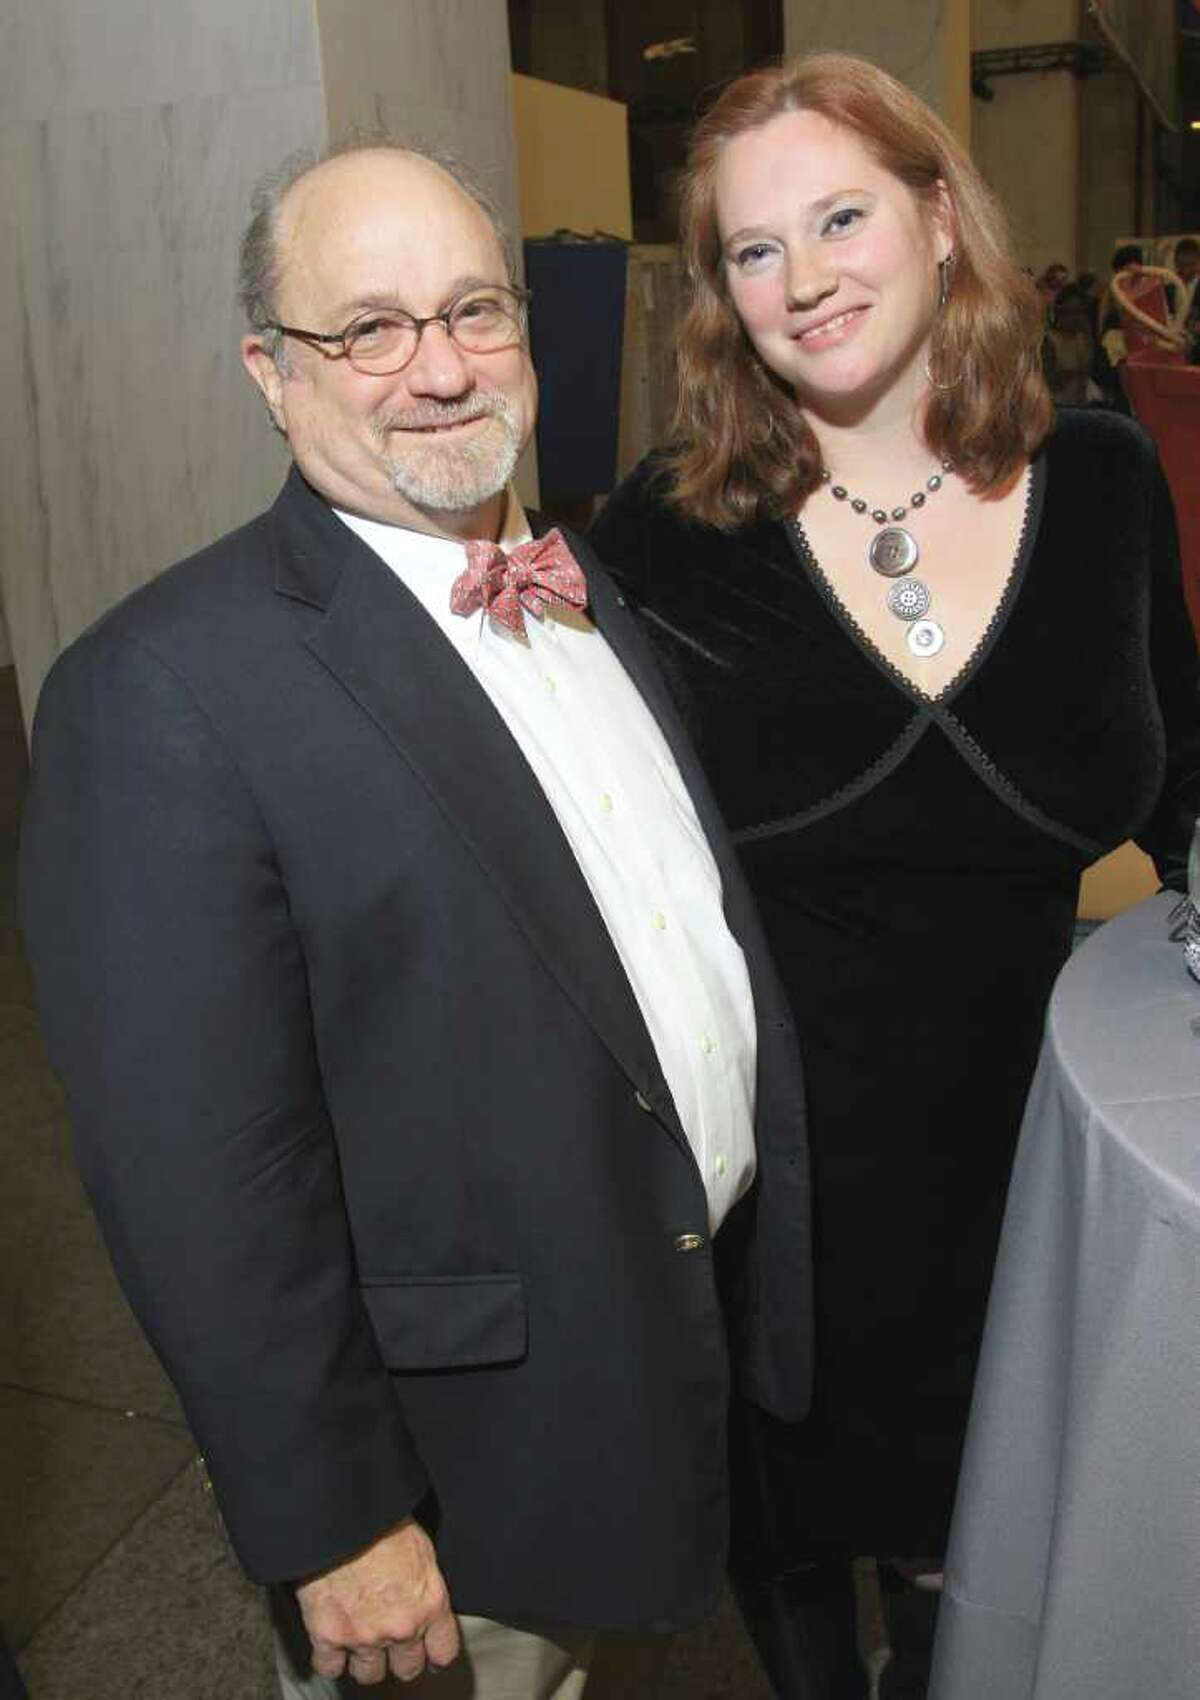 Participating artist Bill Pettit and jewelry designer Elissa Halloran. (Joe Putrock / Special to the Times Union)